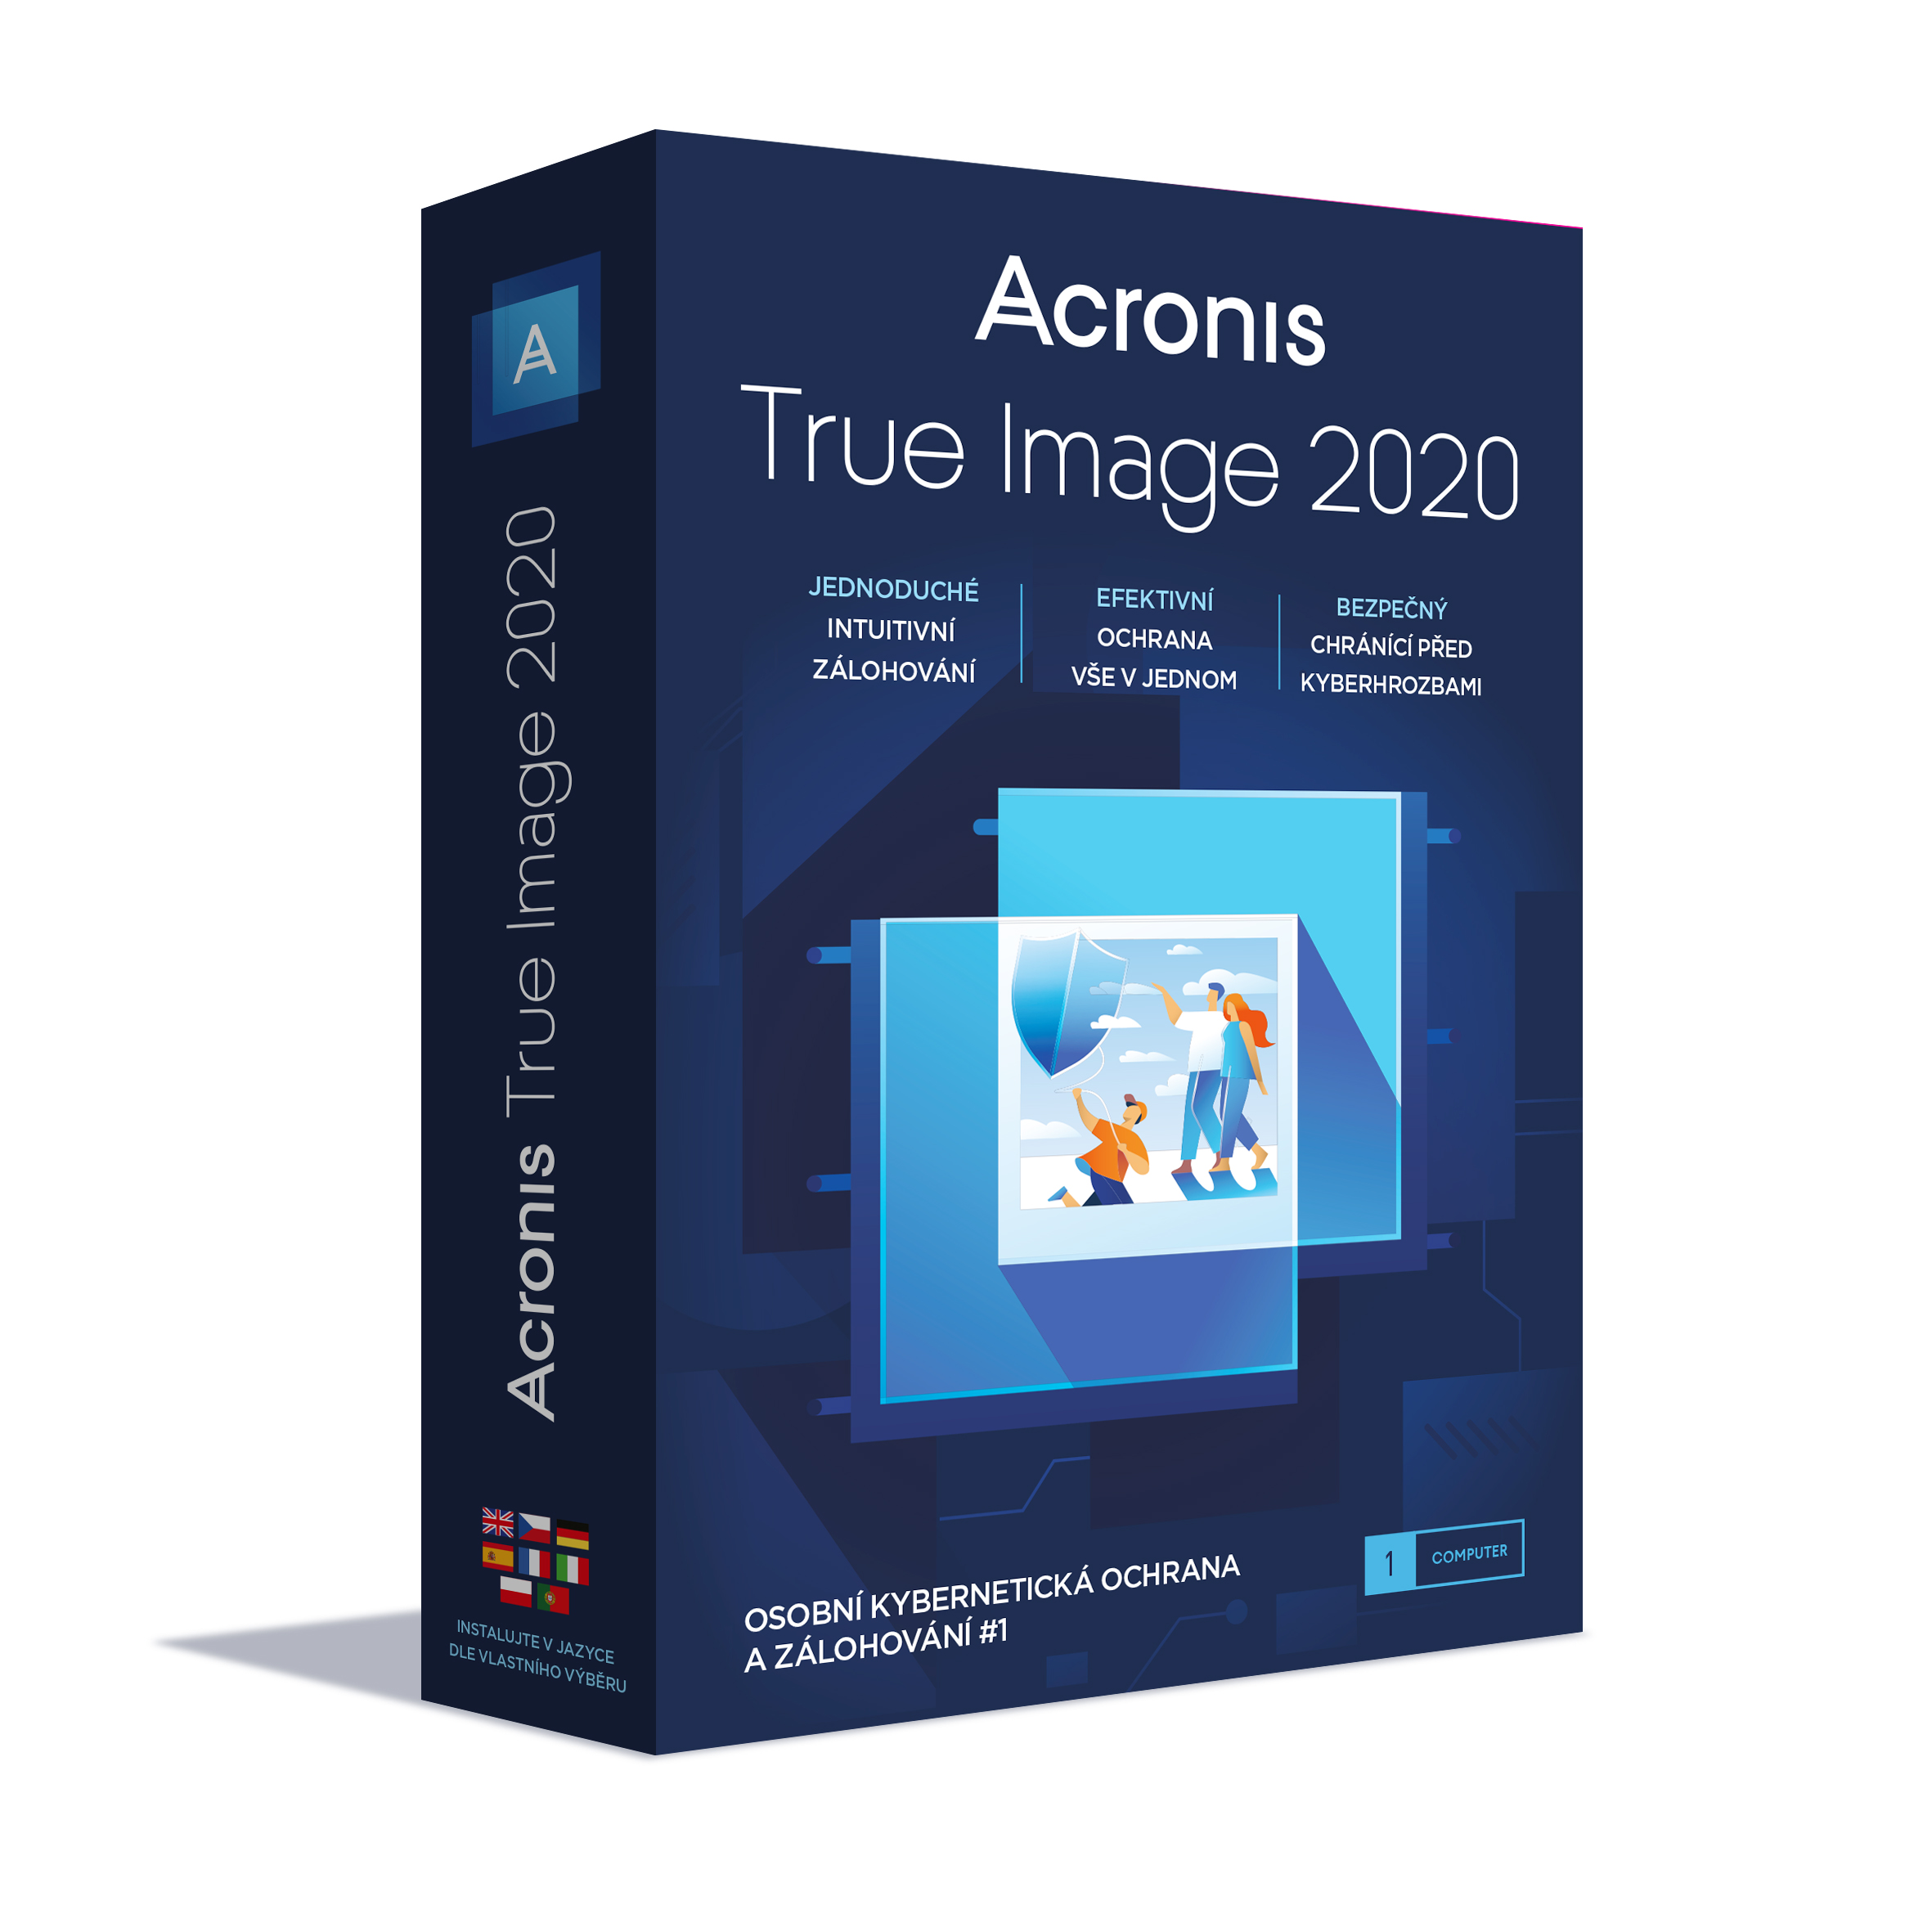 Acronis True Image 2020 - 1 Computer - BOX Upgrade